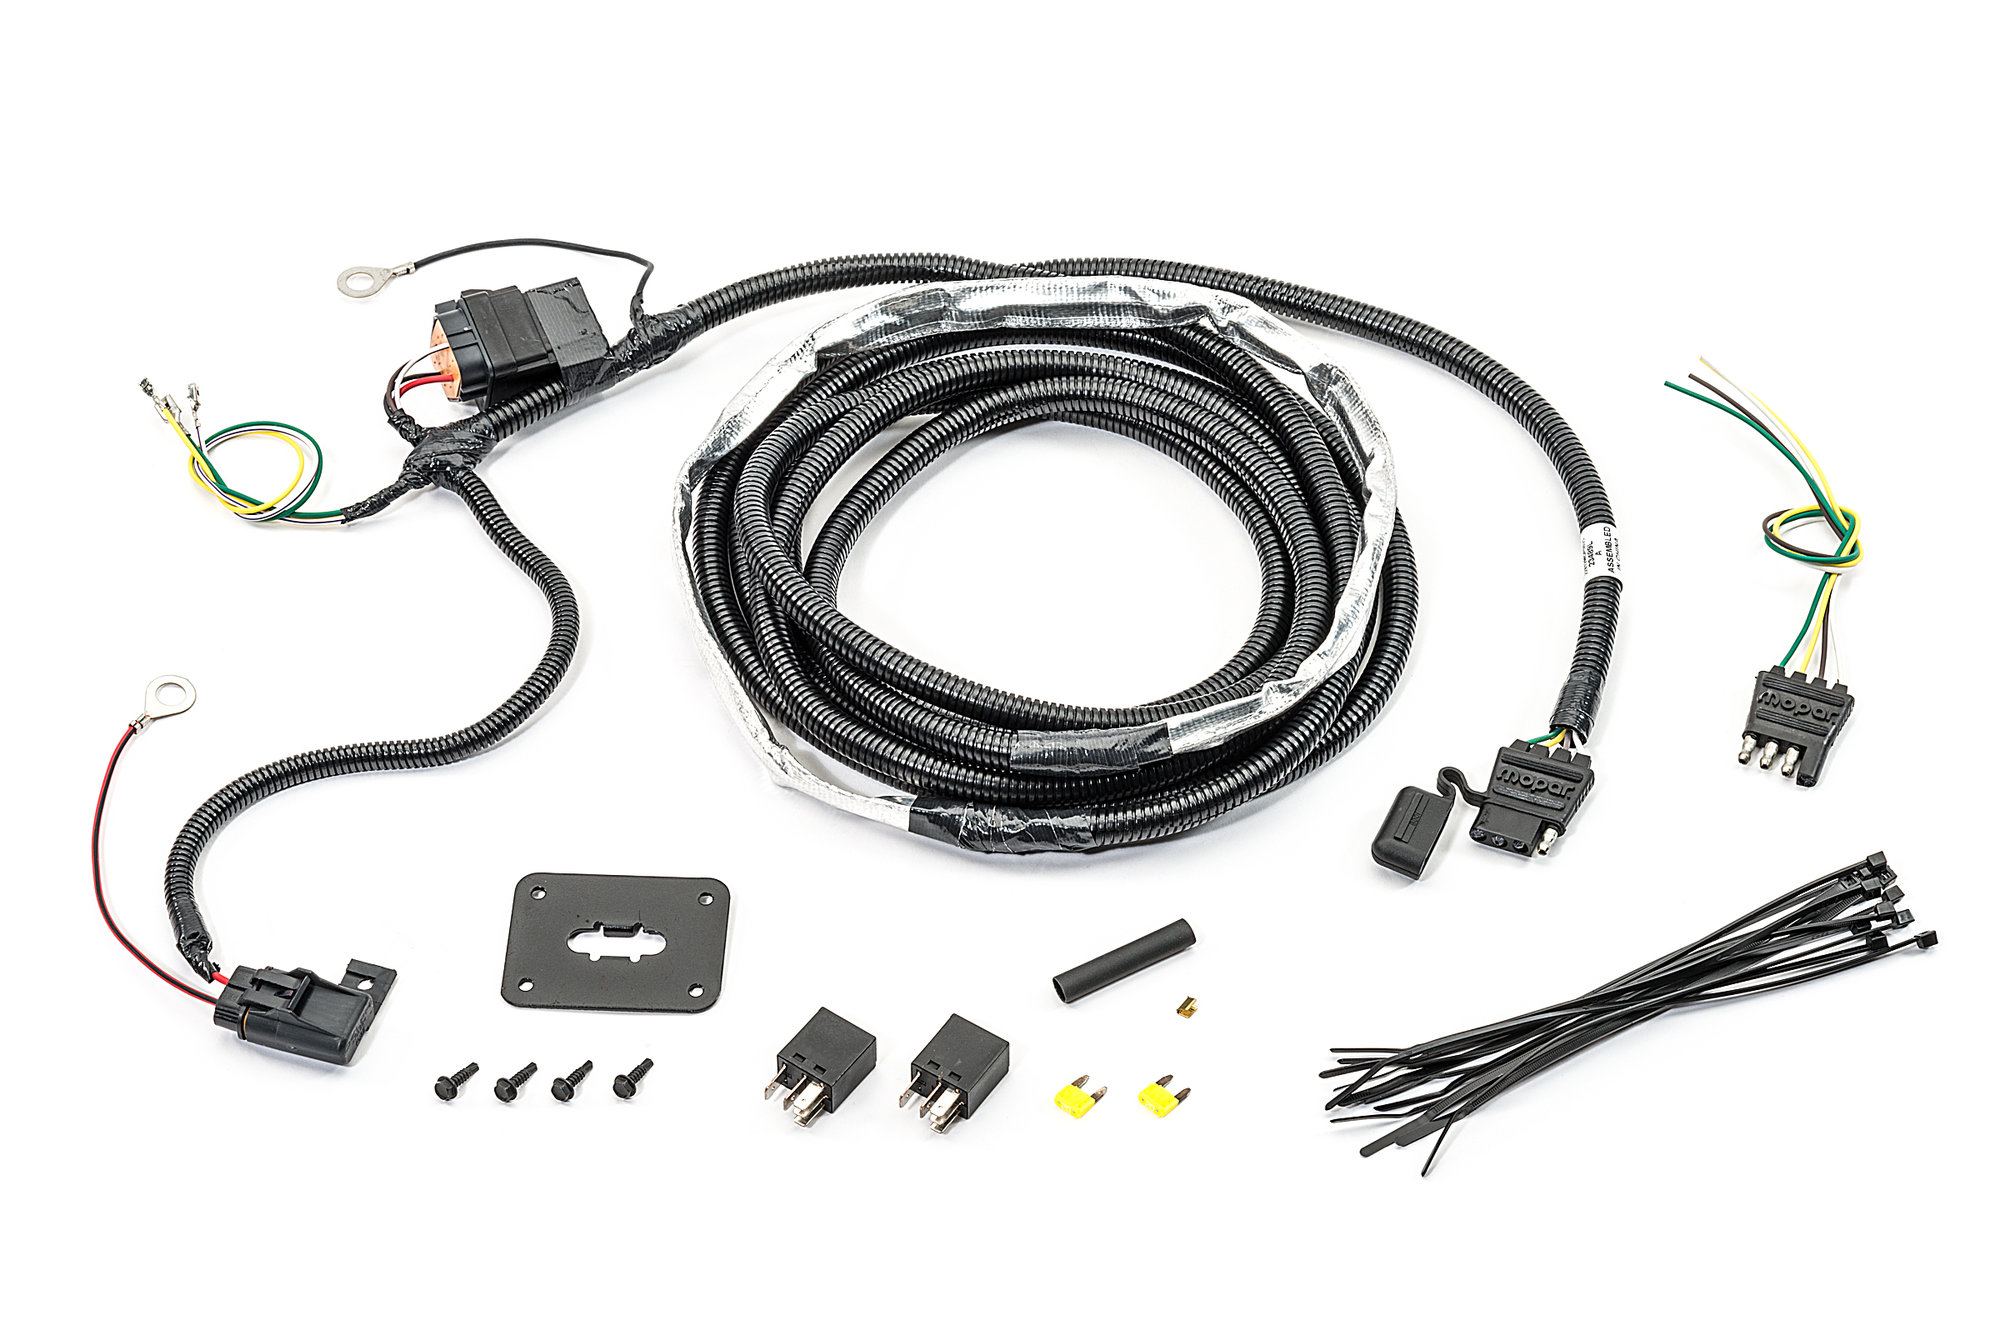 Mopar Ad 4 Way Flat Hitch Wiring Harness For 07 09 Jeep Grand Cherokee Wk